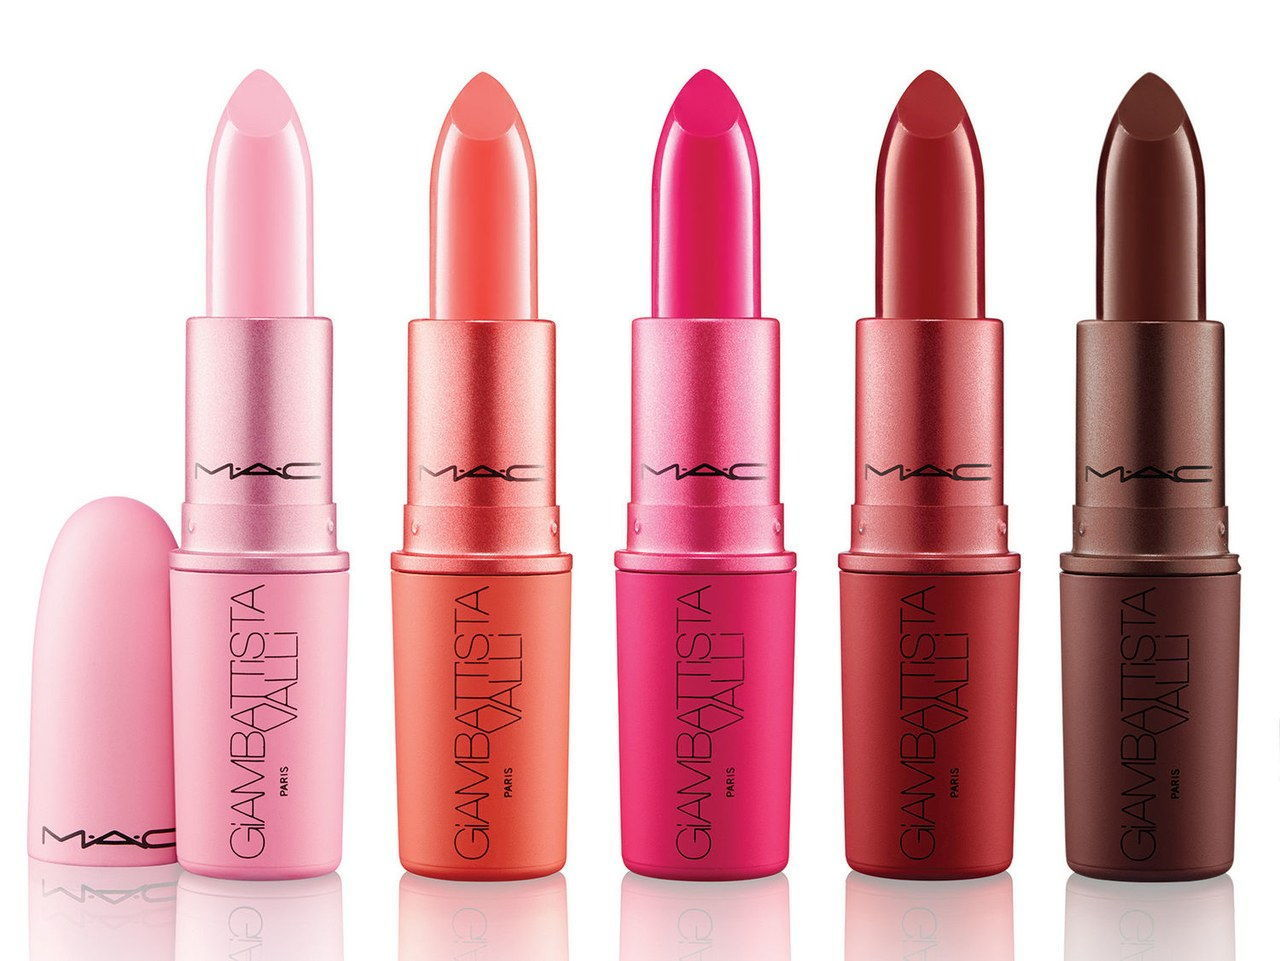 Mac giambattista valli lipsticks 3